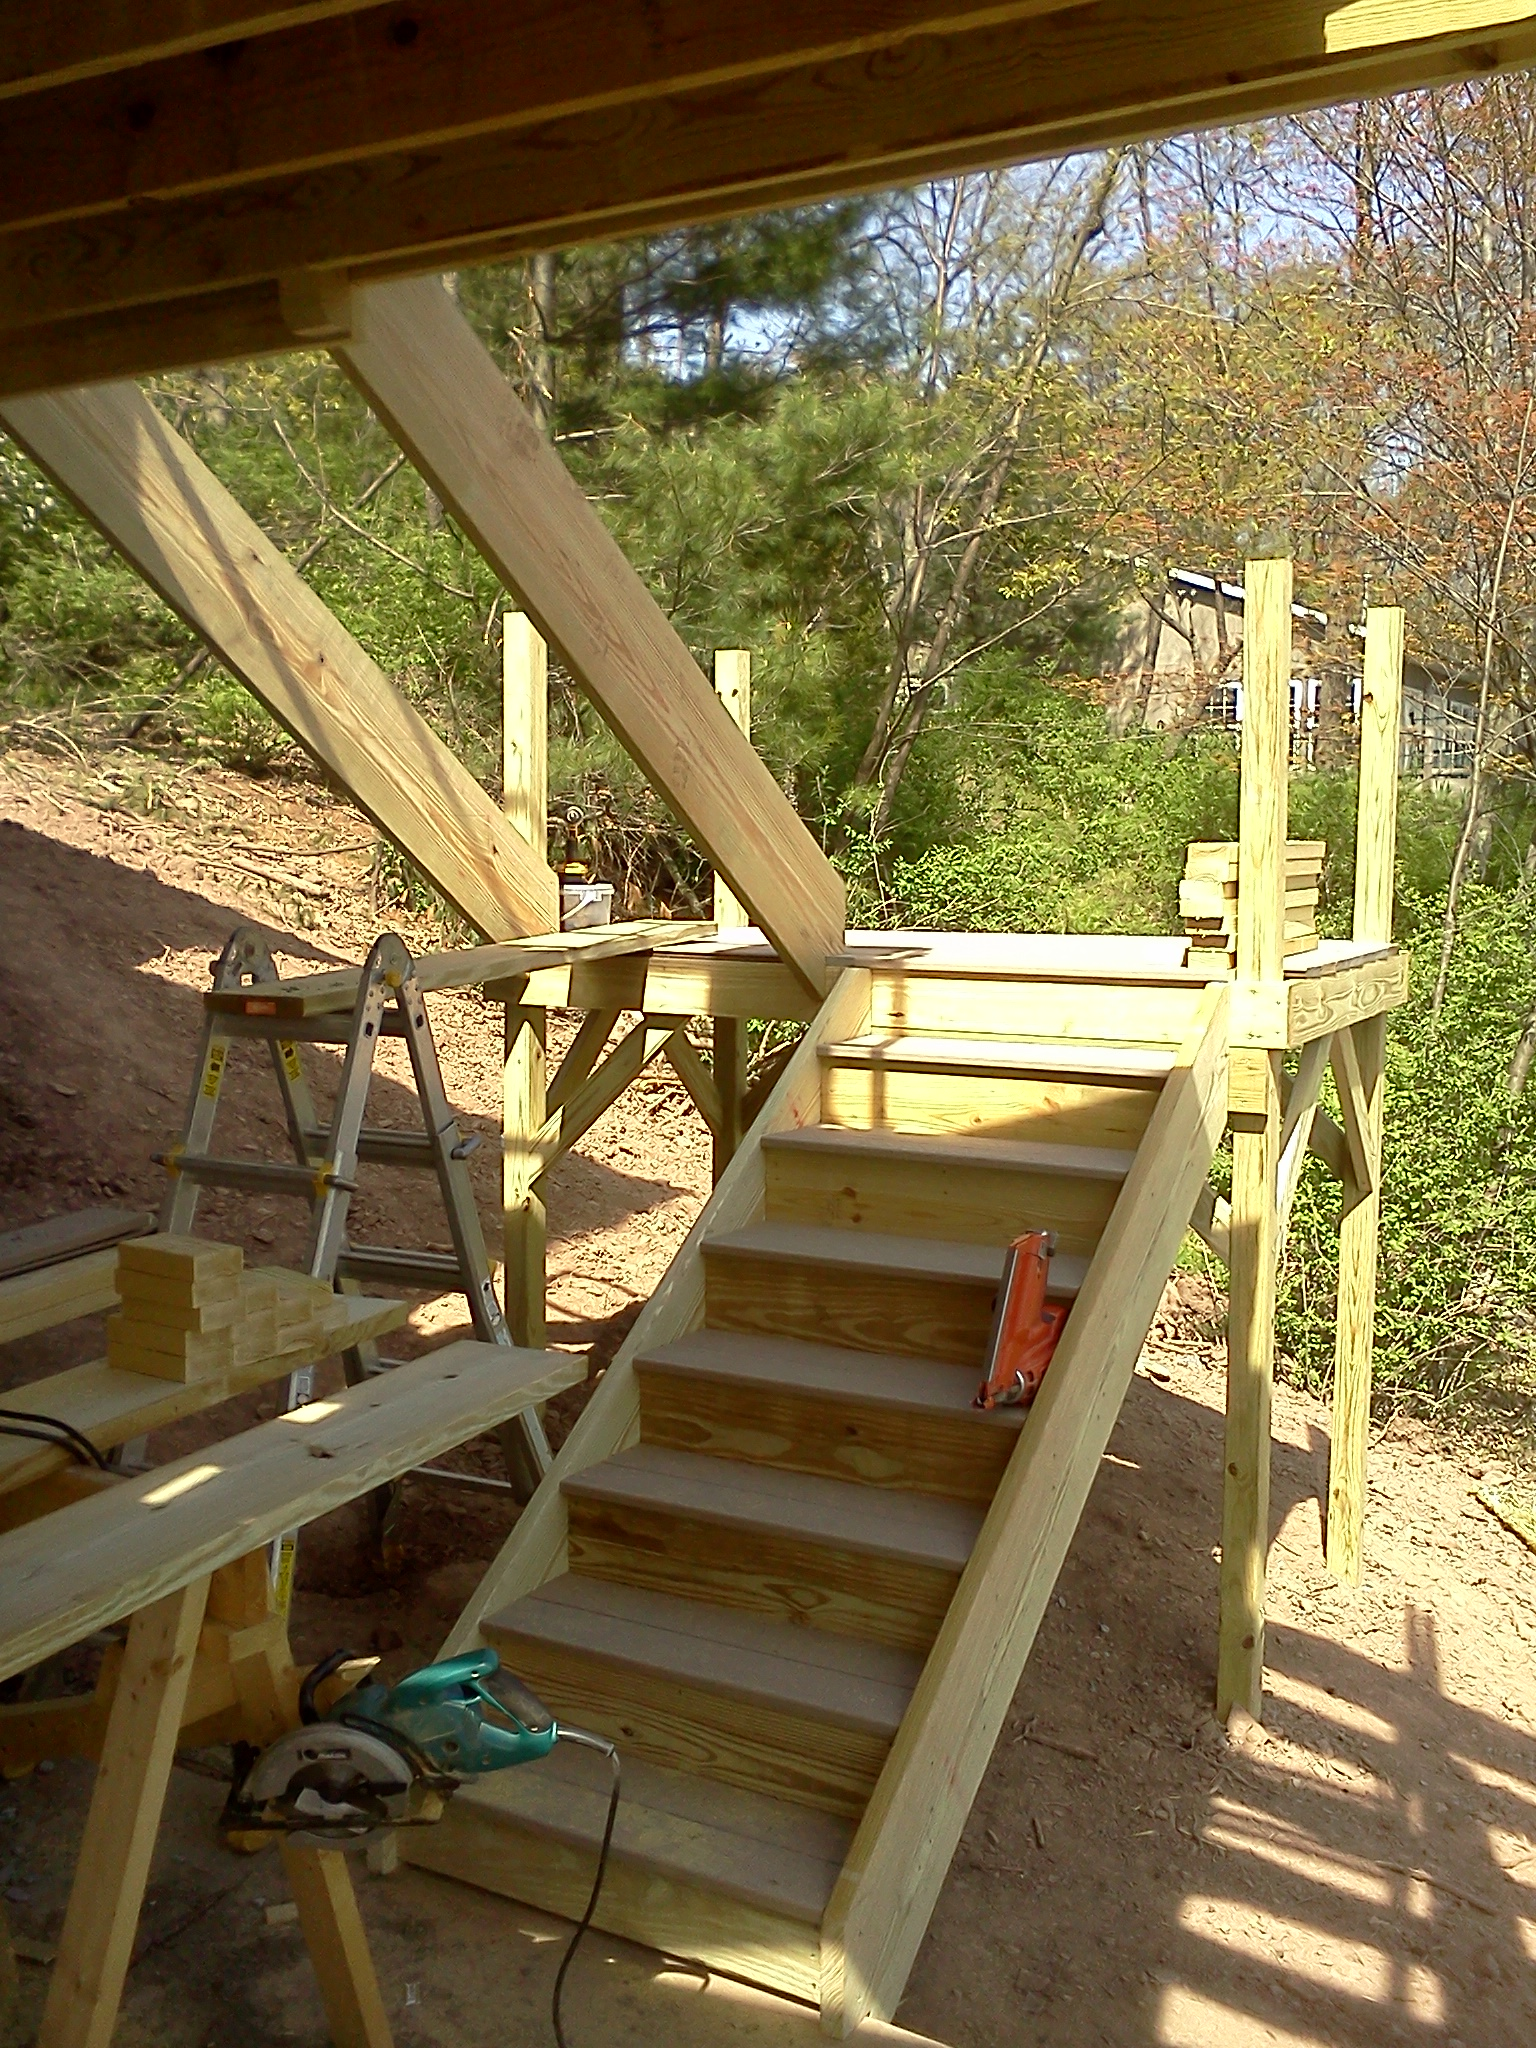 Decks Build Deck Stairs Make Stair Stringer 2 Step Riser